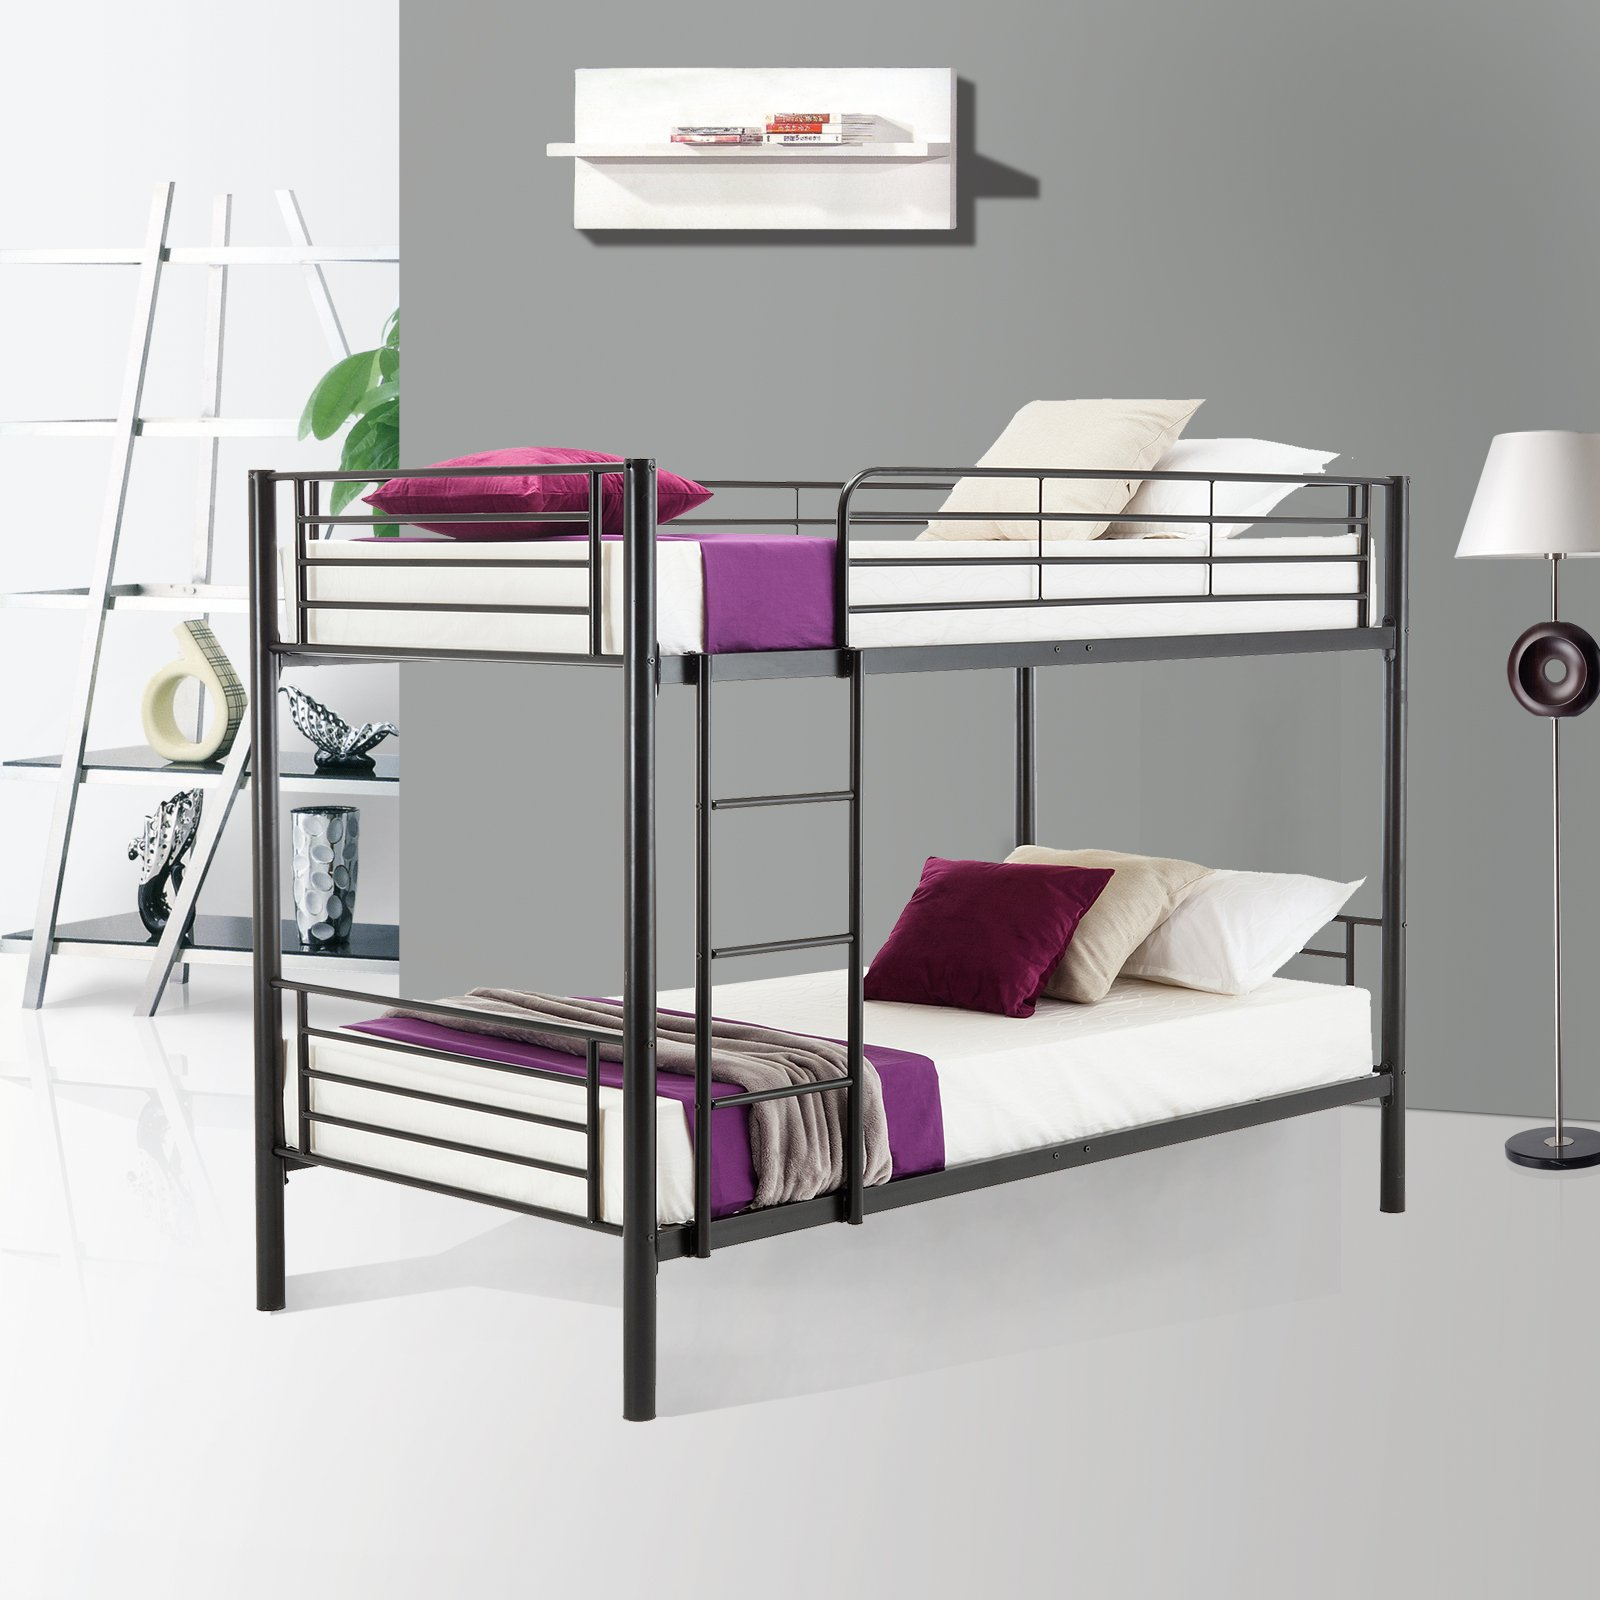 Mecor Metal Bunk Bed Twin Over Twin - with Removable Ladder and Guard Rail - Space Saving Design - Easy Assembly - Black